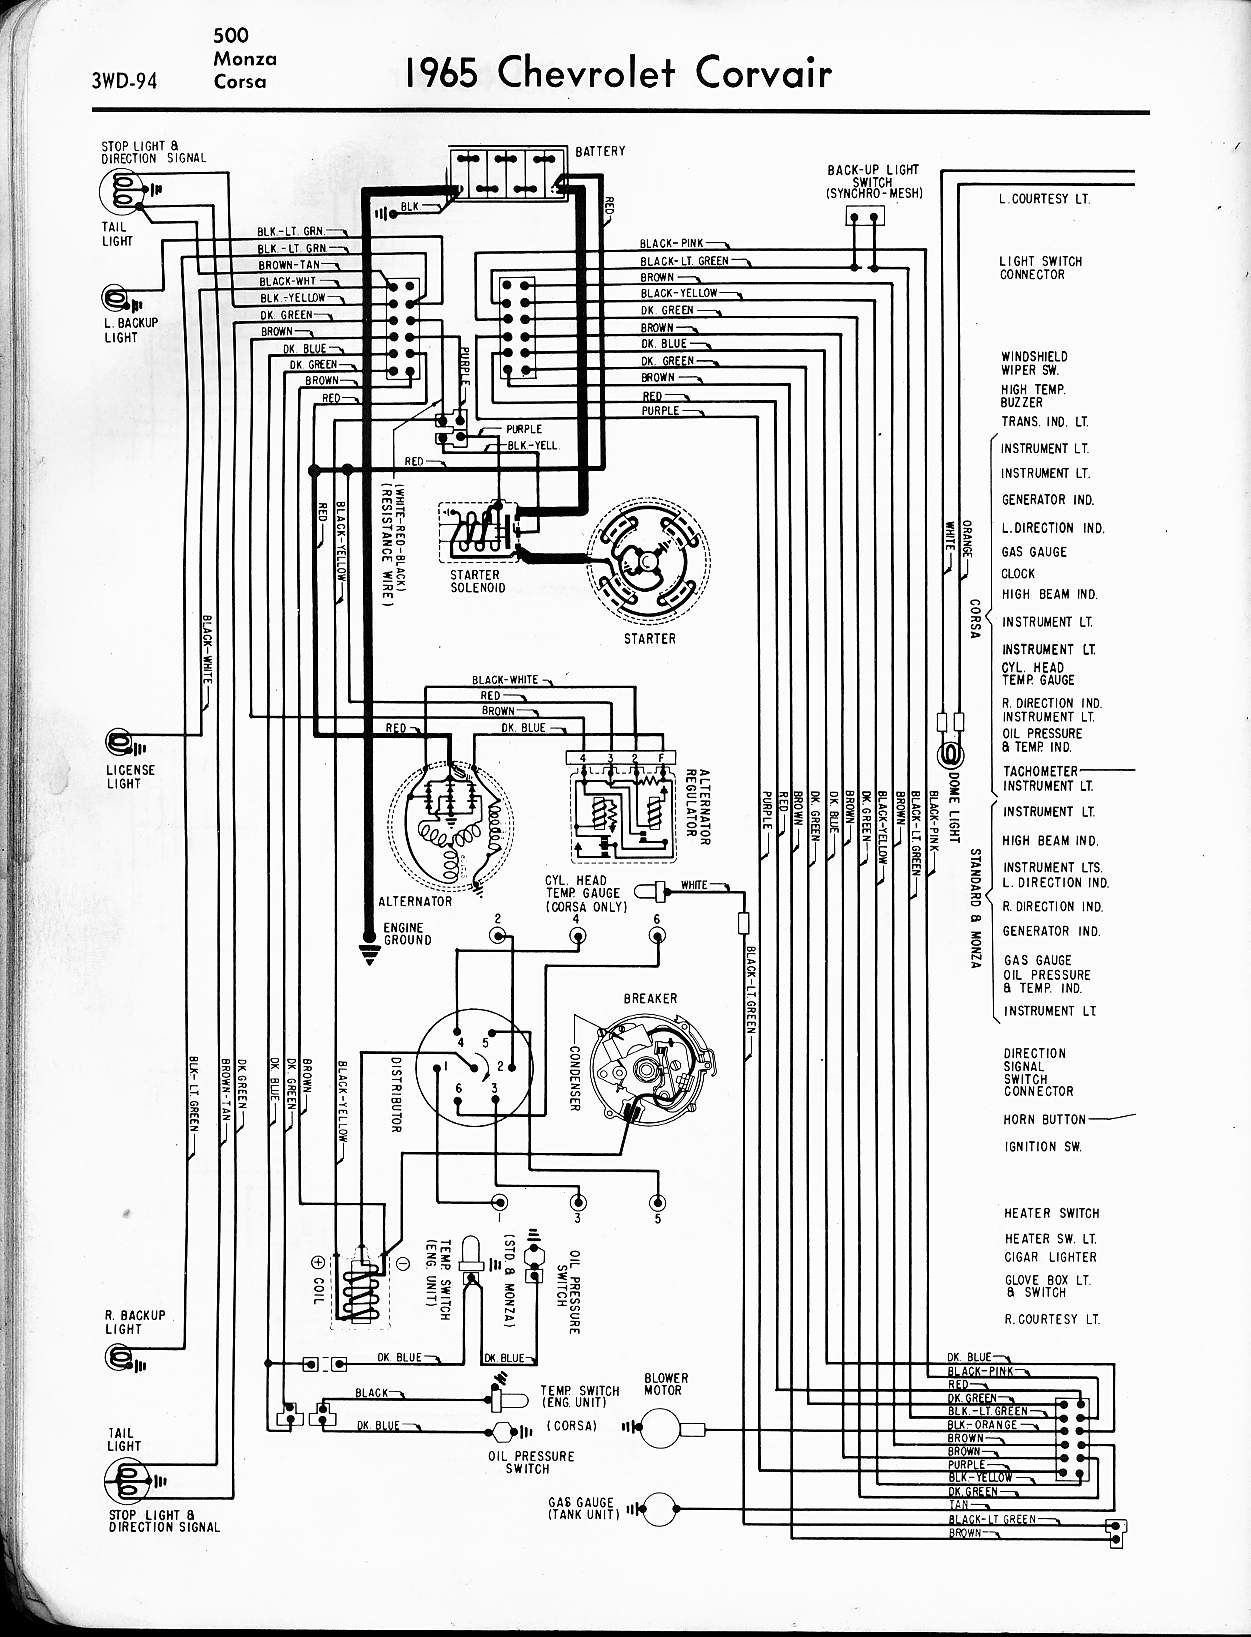 hight resolution of wiring diagram for early corvair conversion from generatoir to wiring diagram for early corvair conversion from generatoir to